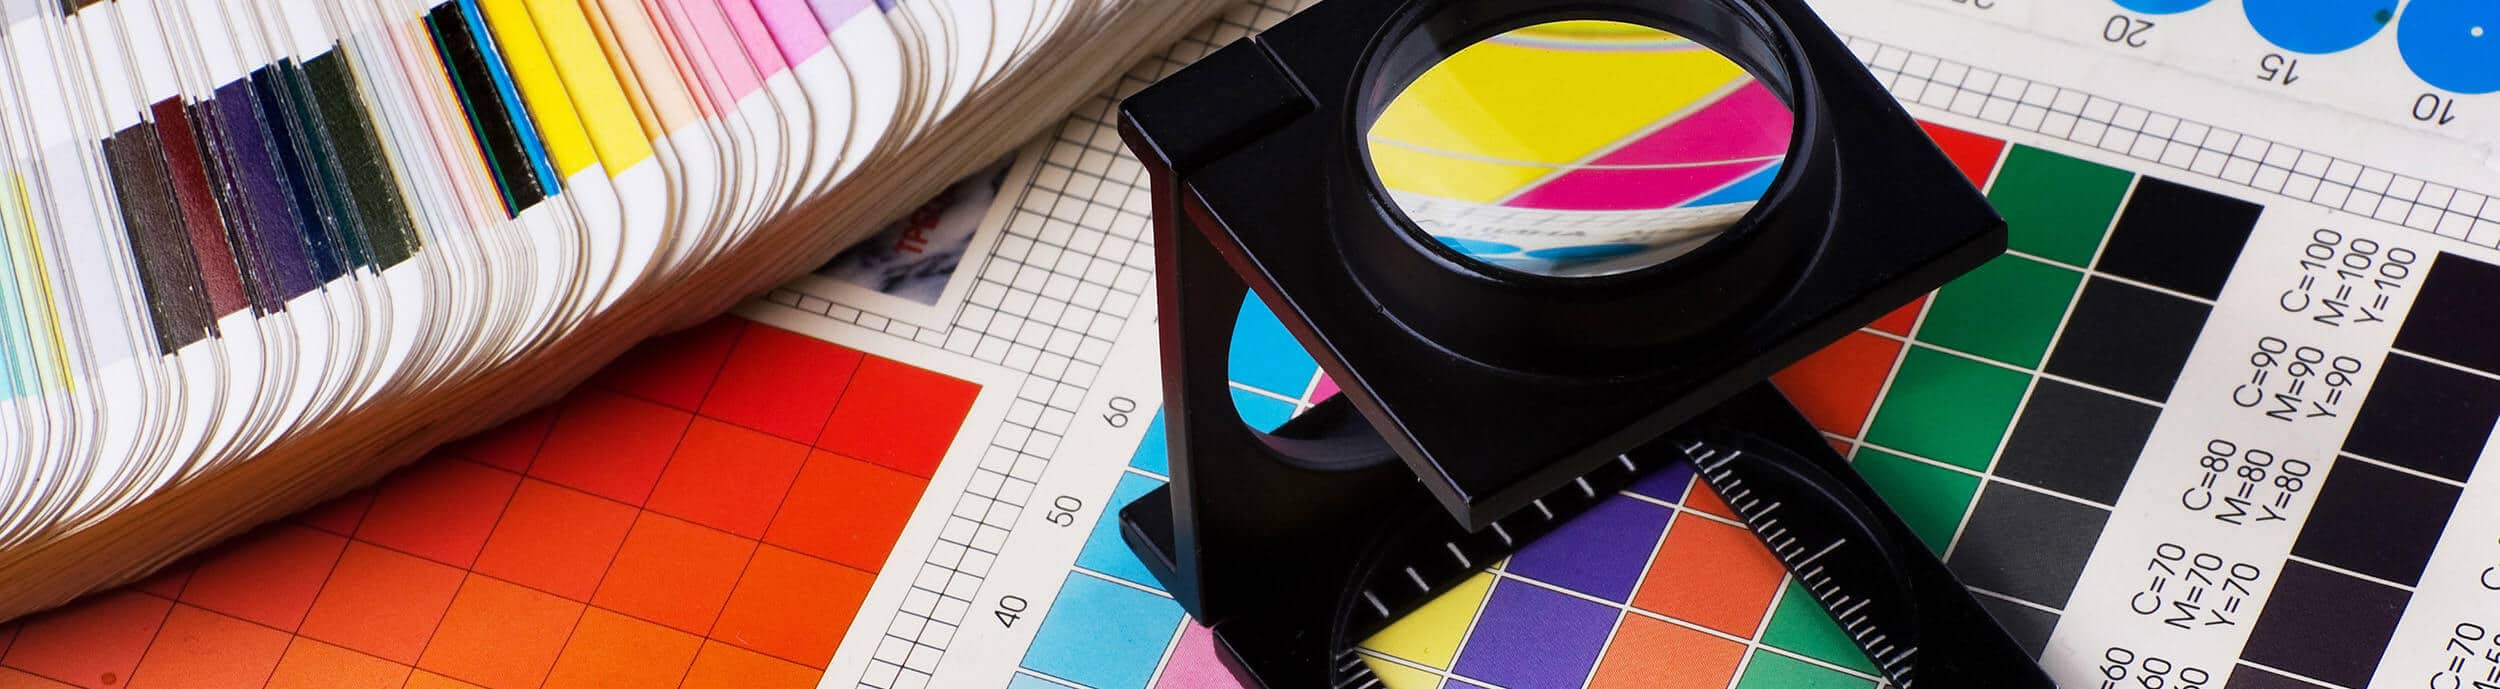 Print services from Colour It In